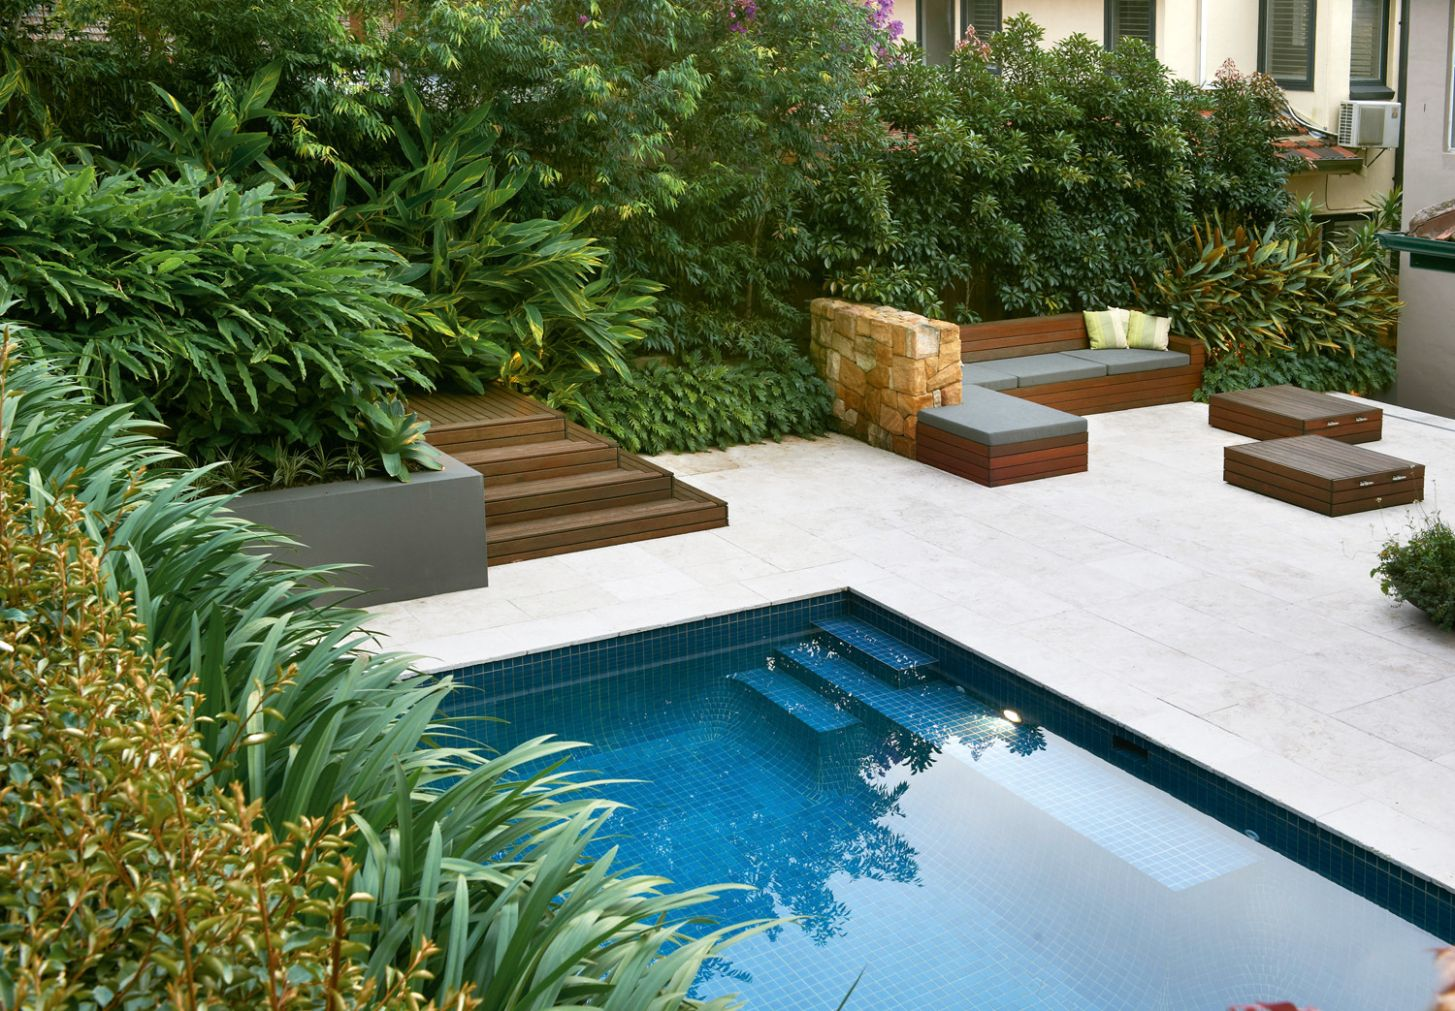 Simply stylish: A classic pool and landscape design - Completehome - pool landscaping ideas queensland